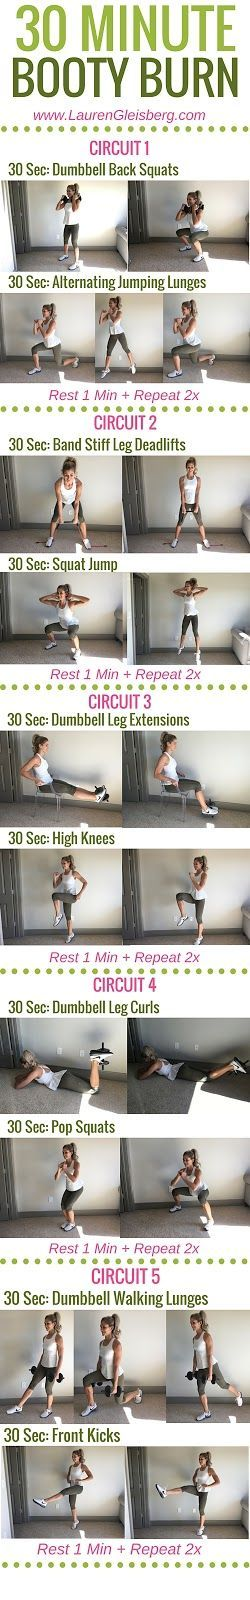 30 MINUTE BOOTY BURN WORKOUT - Day 1 of LG Fitmas Challenge www.LaurenGleisbe...